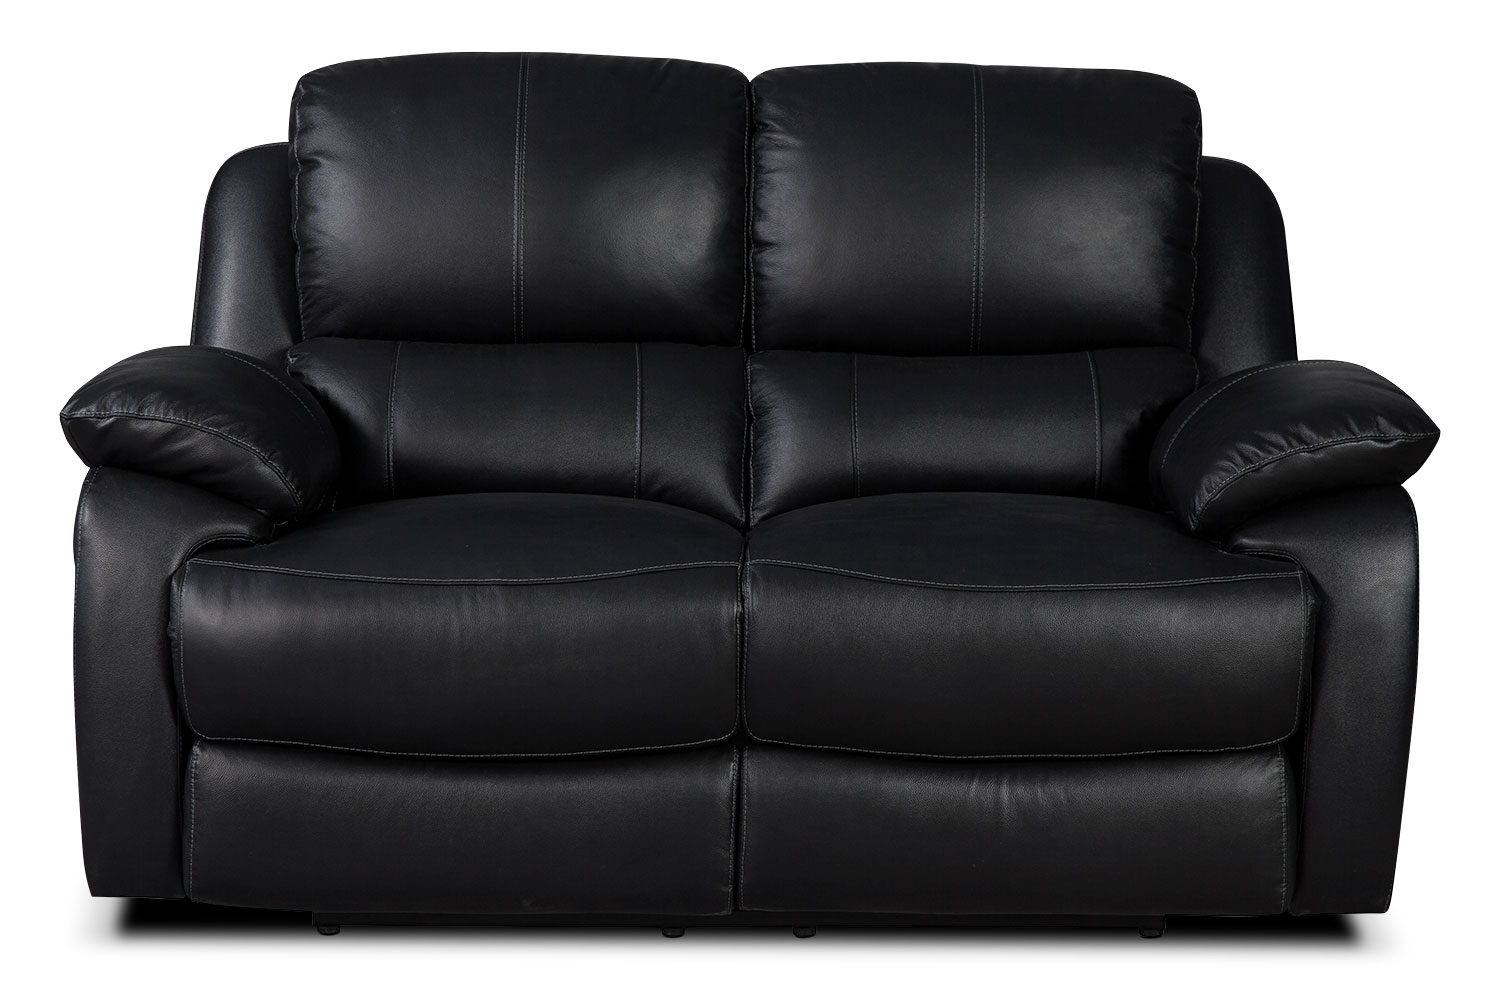 Cairo Genuine Leather Reclining Loveseat – Black